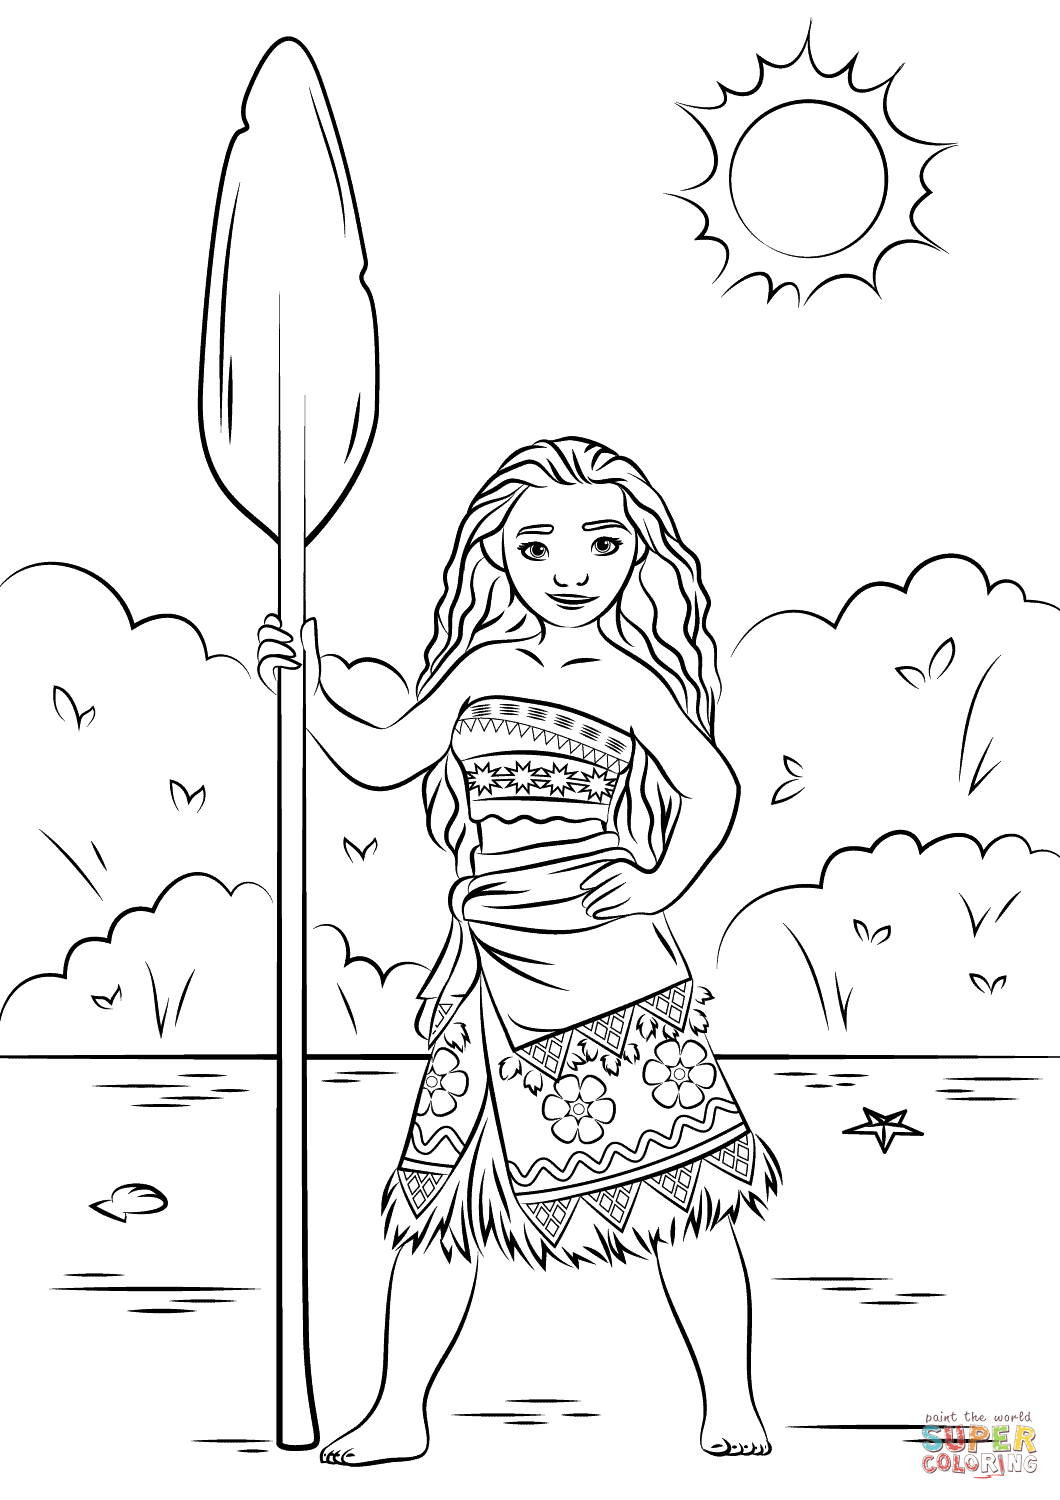 Princess Moana | Super Coloring | moana | Pinterest | Ausmalbilder ...